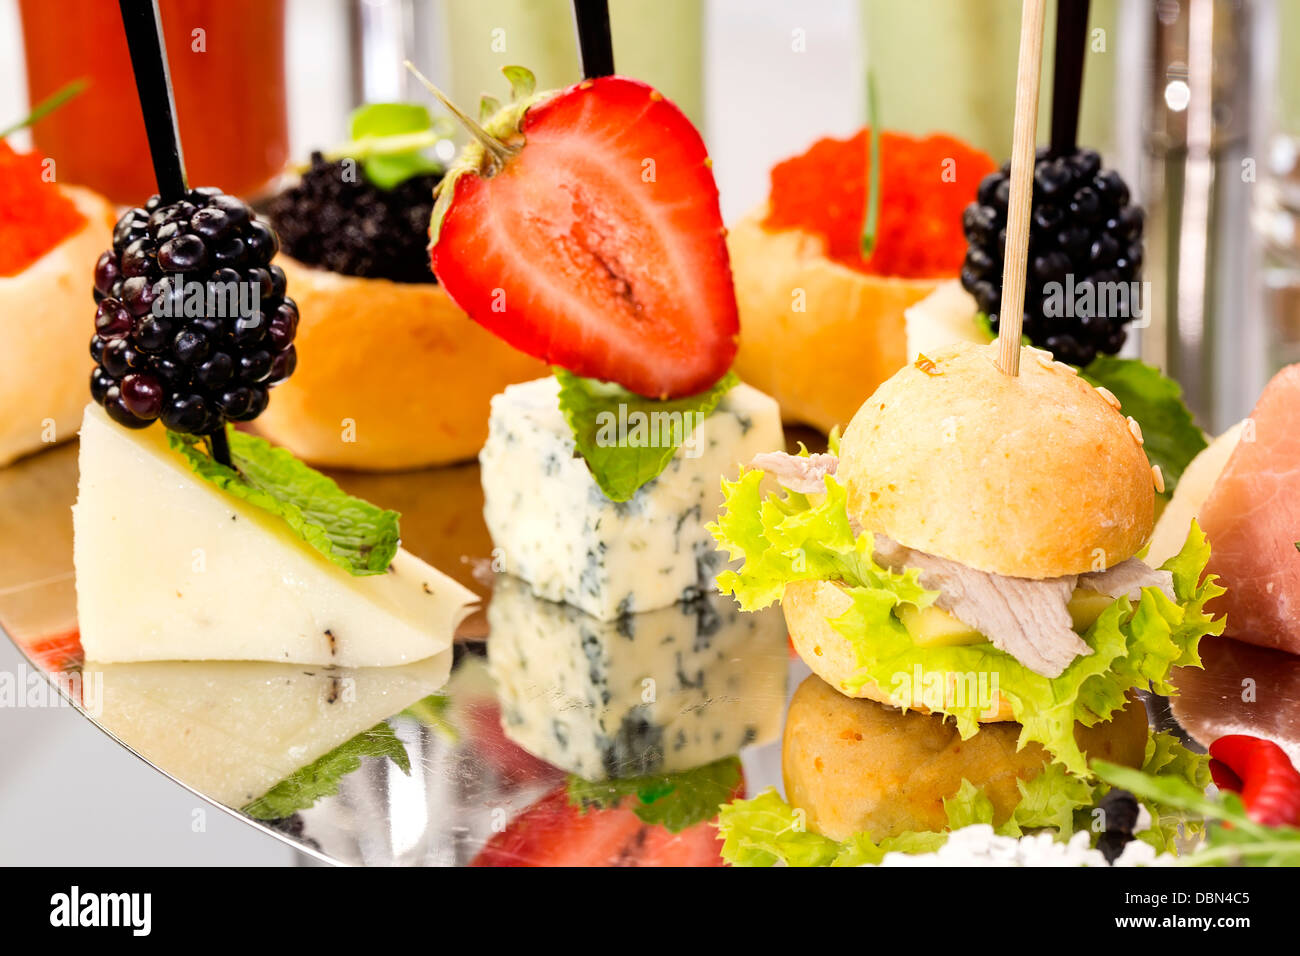 canape with meat vegetables and seafood - Stock Image